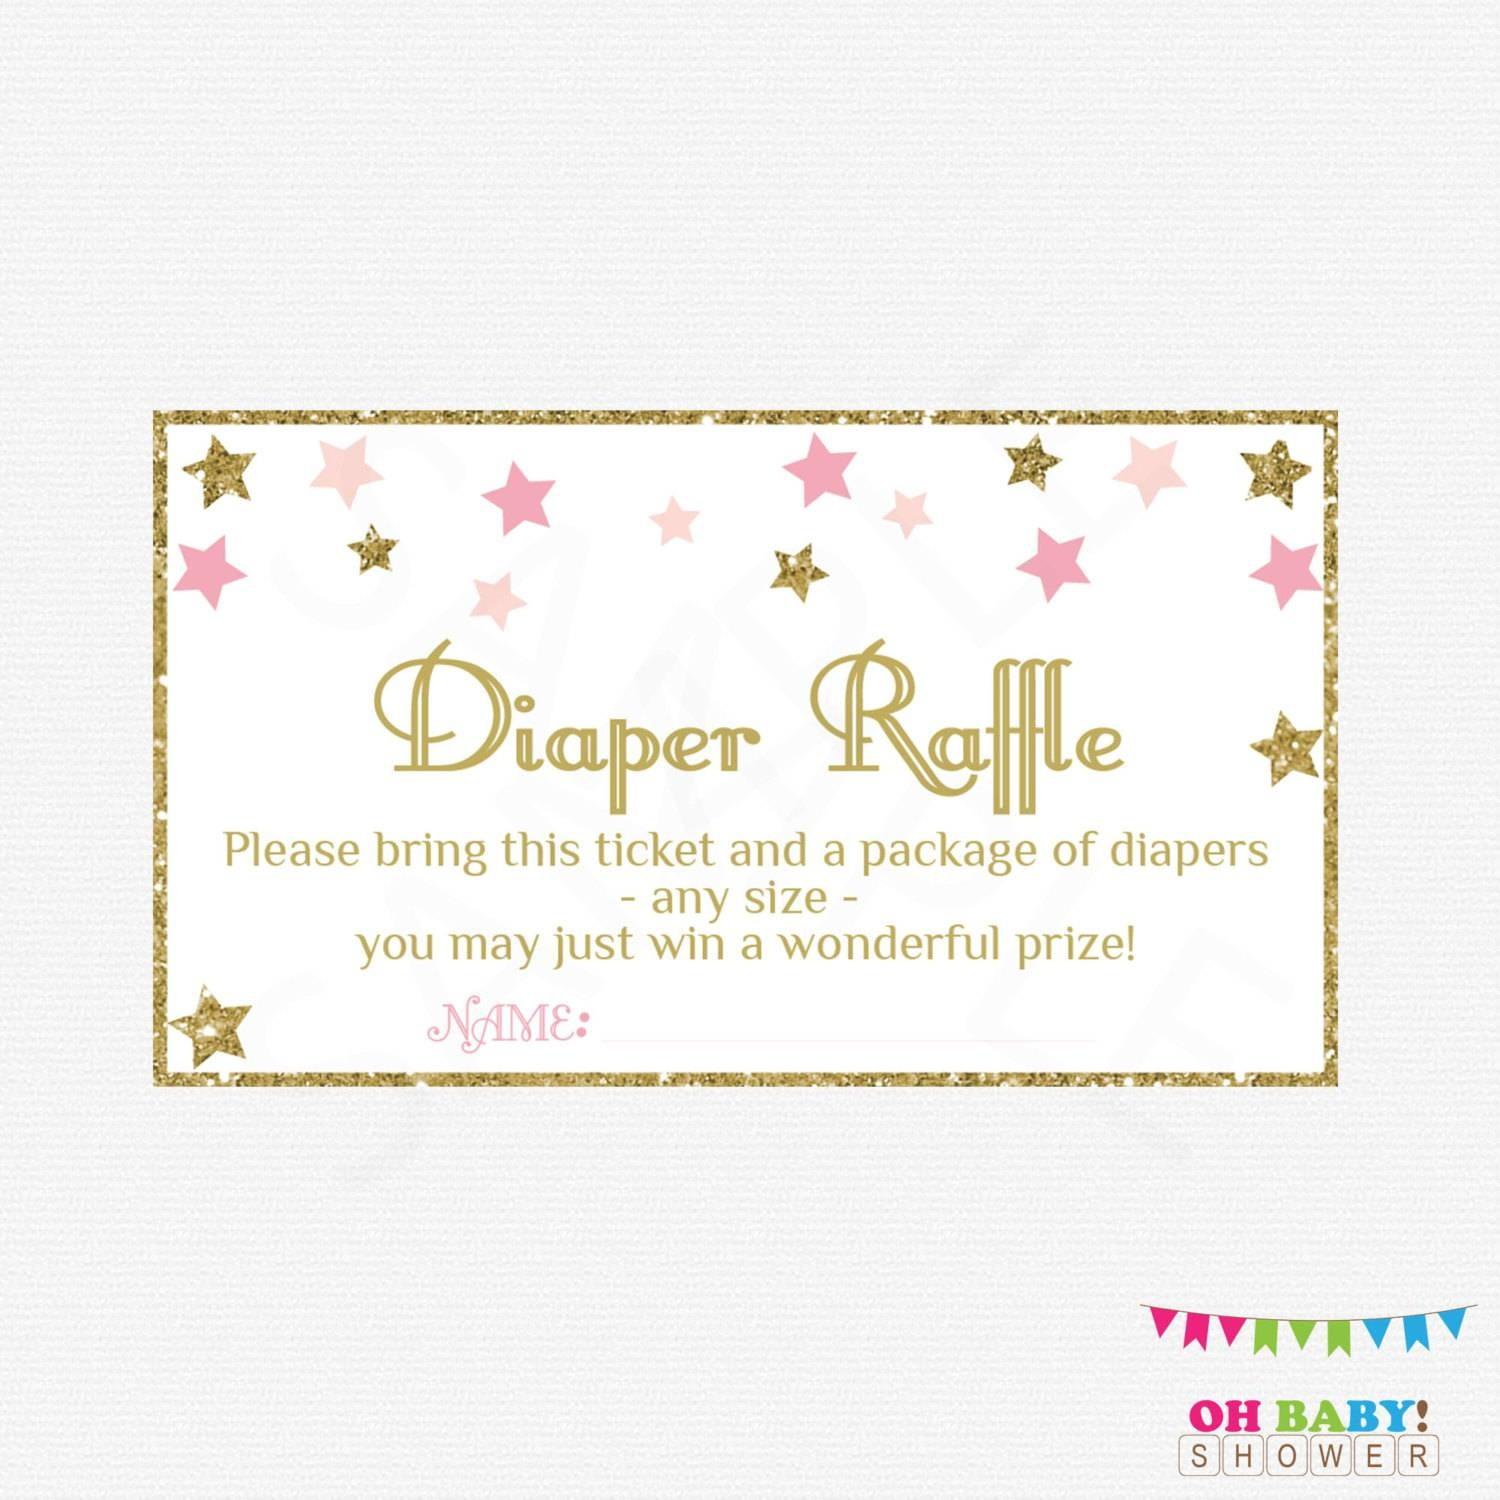 36 Cute Diaper Raffle Tickets | Kittybabylove - Free Printable Diaper Raffle Ticket Template